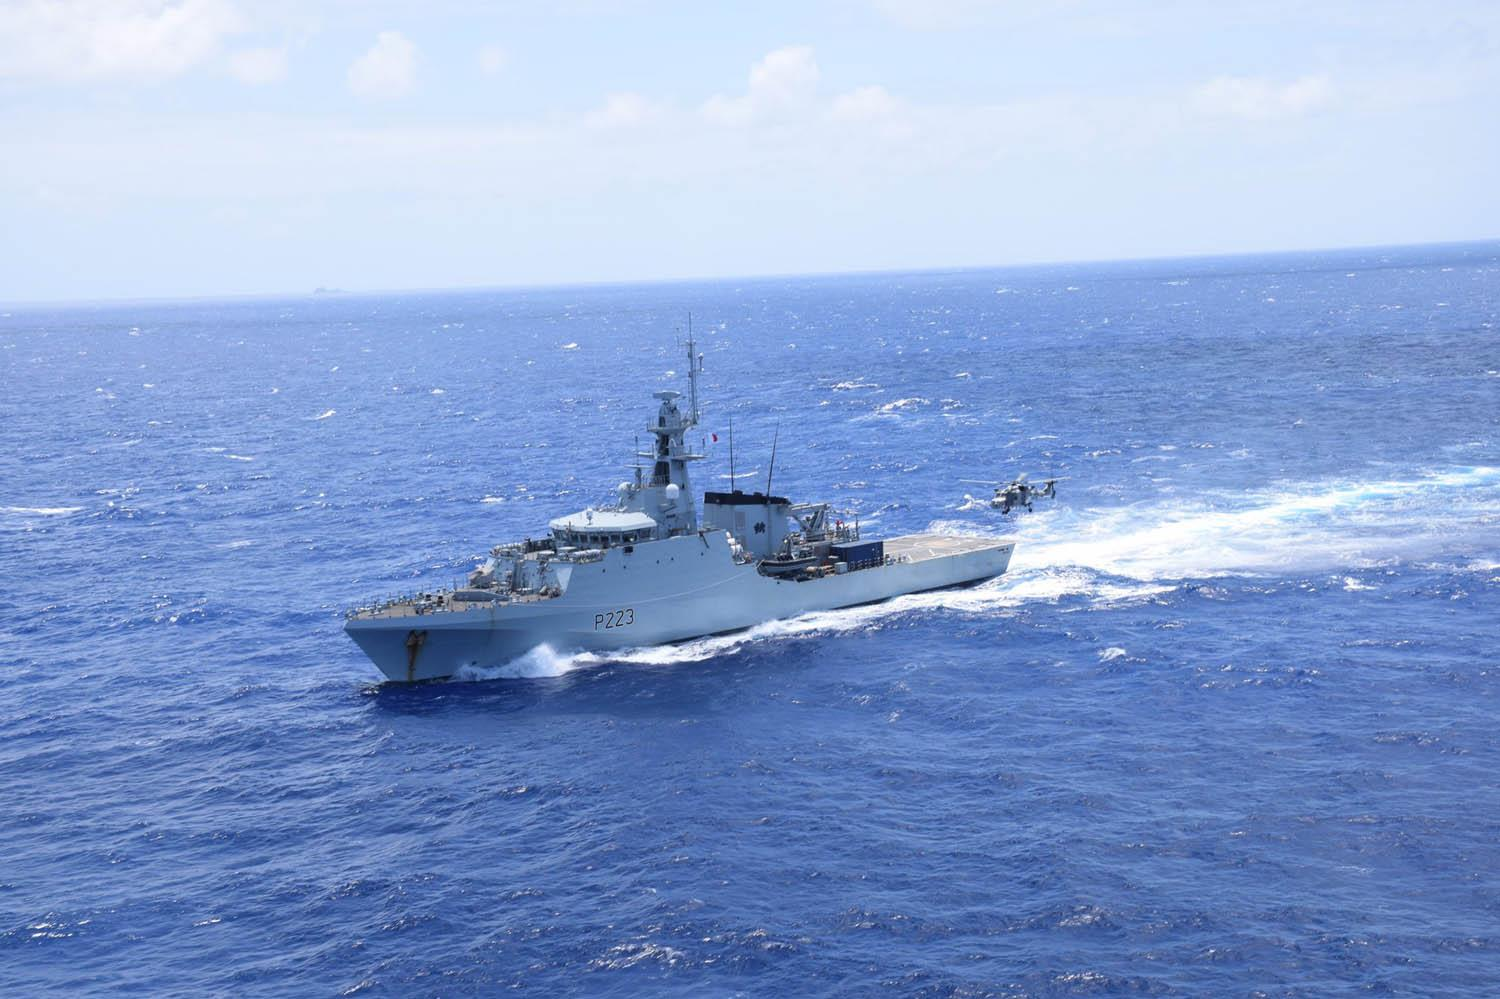 UK Ministry of Defence put four British Royal Navy River Class Patrol Boats on standby in event of a no-deal being reach in Brexit talks